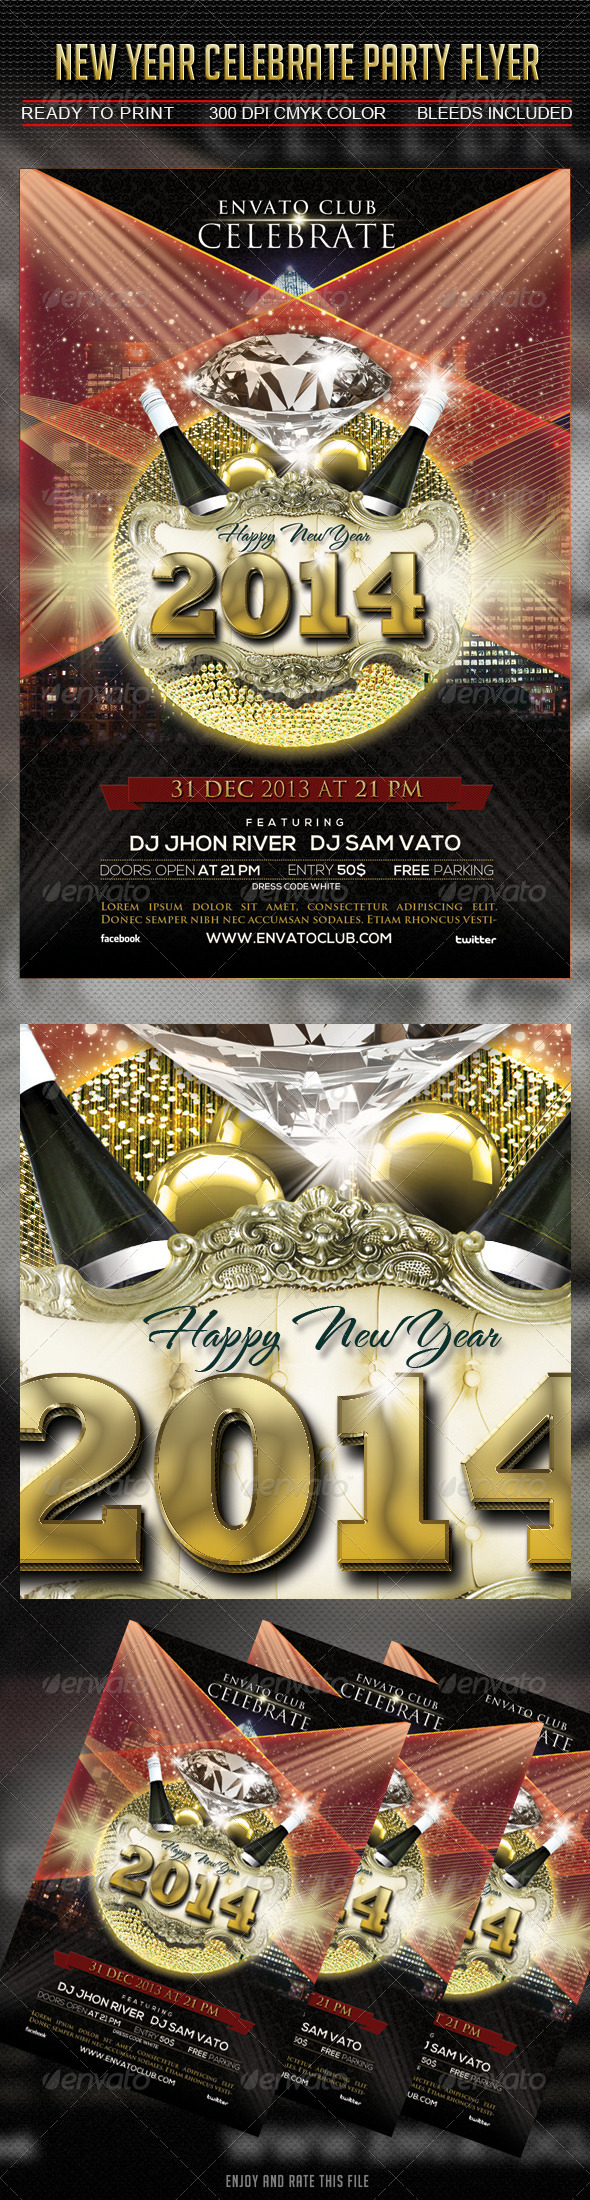 GraphicRiver New Year Celebrate Party Flyer 5736540